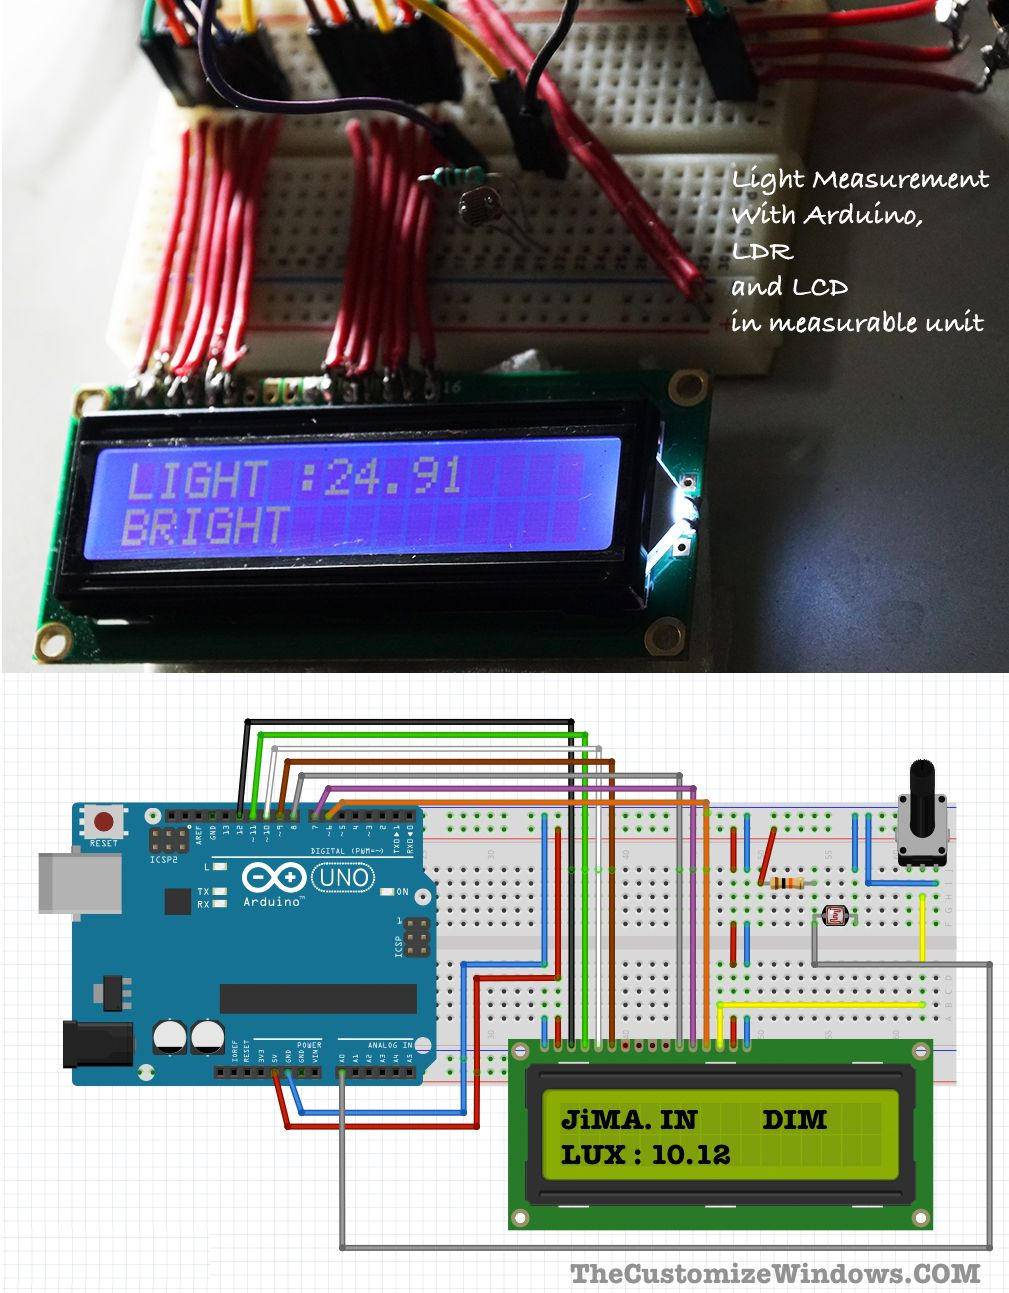 Light Measurement With Arduino Ldr And Lcd Technology Pinterest Custom Printed Circuit Board Pcb Pcba Segway Buy It Will Give You A Unit Of Intensity Like Lux Remark About The Condition As Dark Dim Bright Etc